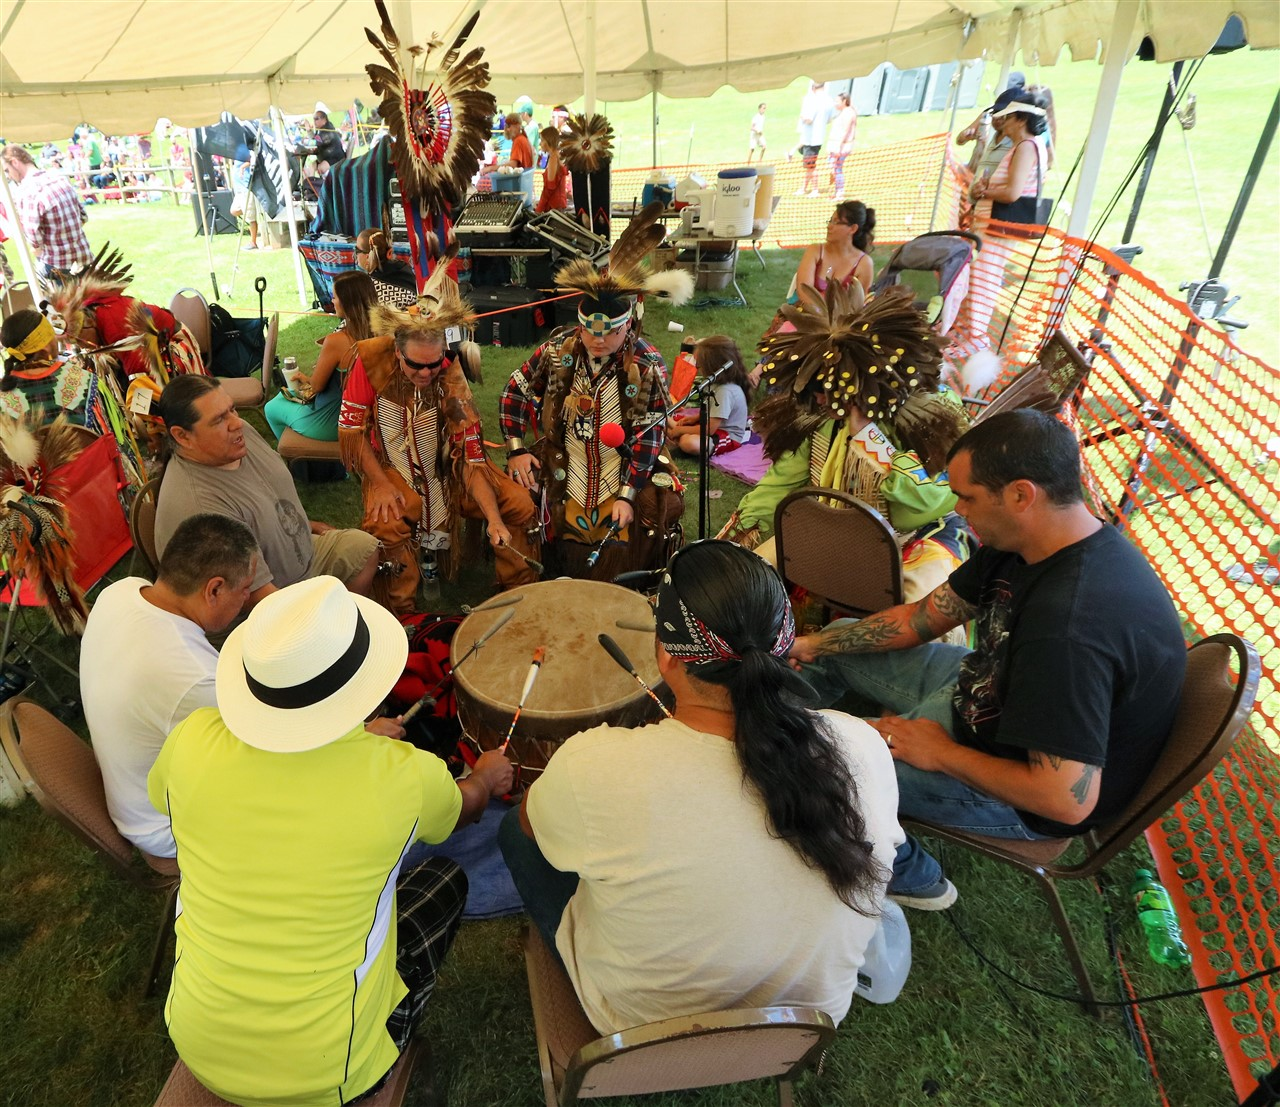 2017 07 09 69 Loudonville OH Mohican Pow Wow.jpg